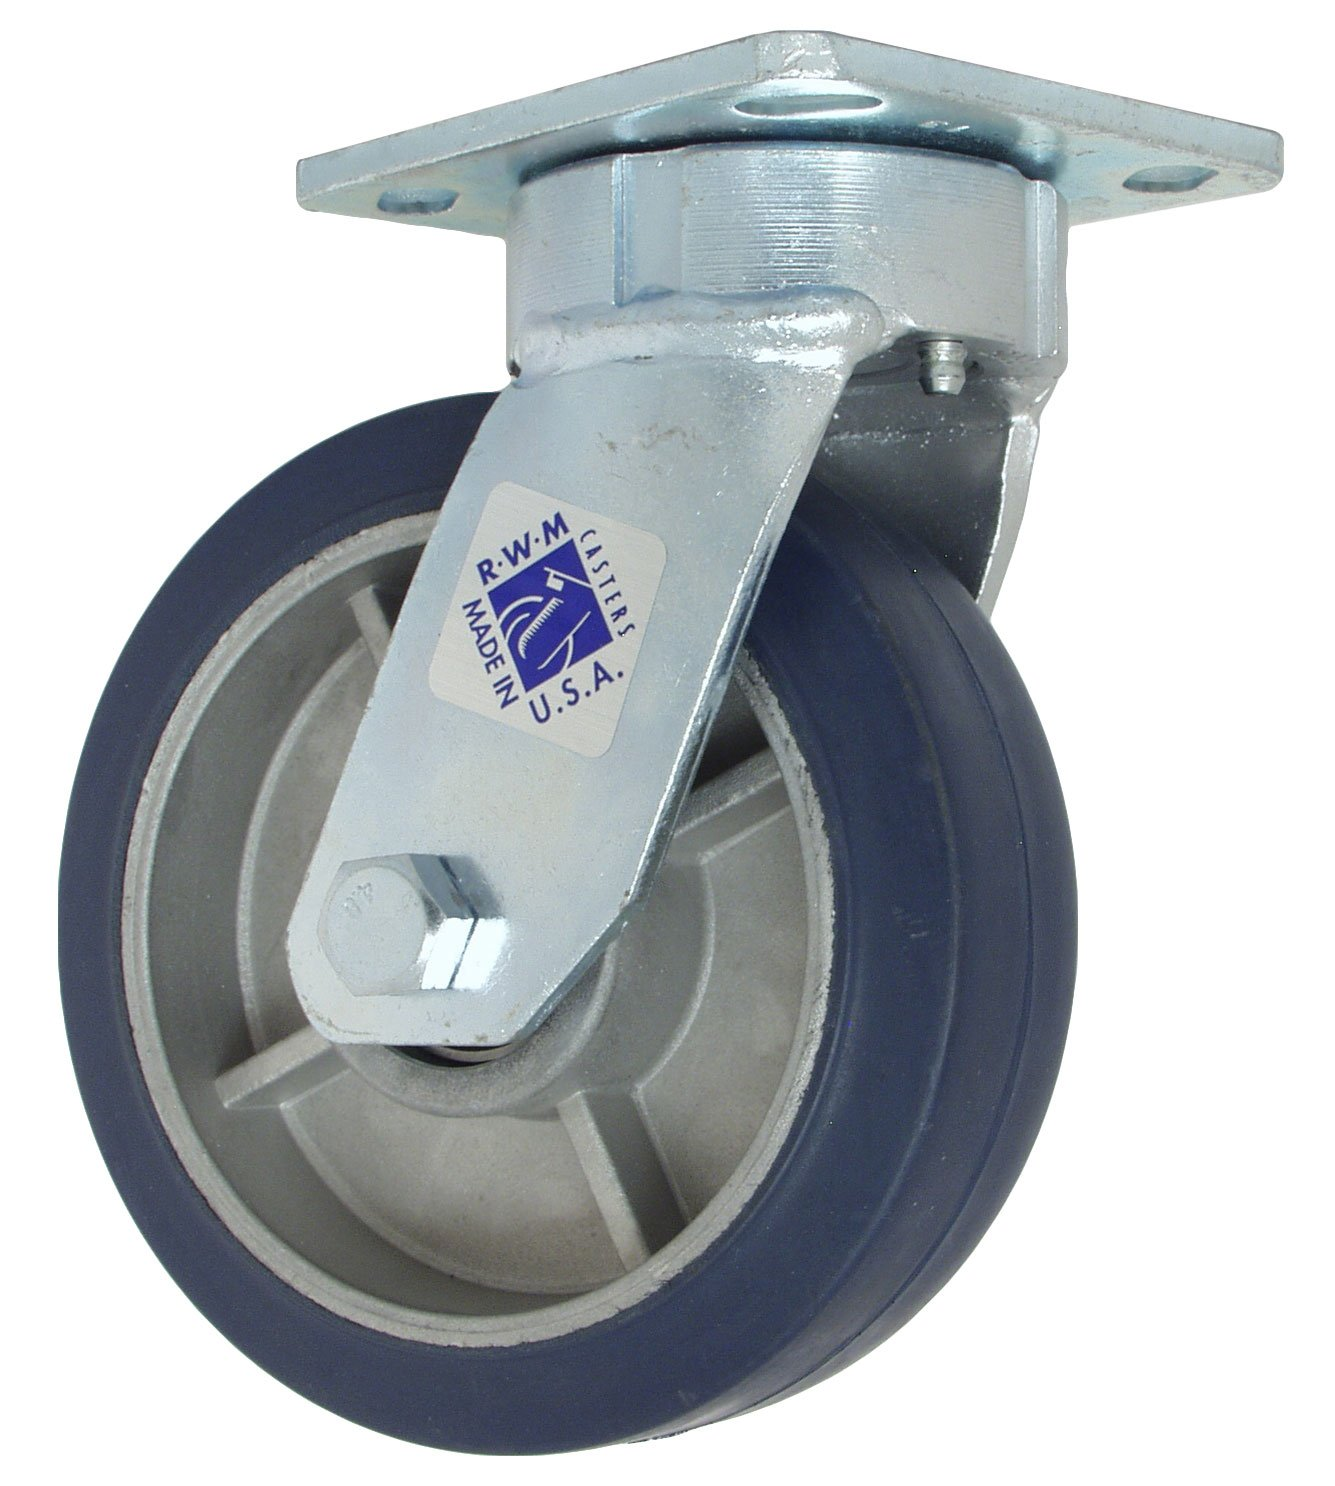 RWM Casters 65-RAB-0620-S 65 Series 7-1/2'' High, 6'' Rubber on Aluminum Wheel, Swivel Caster